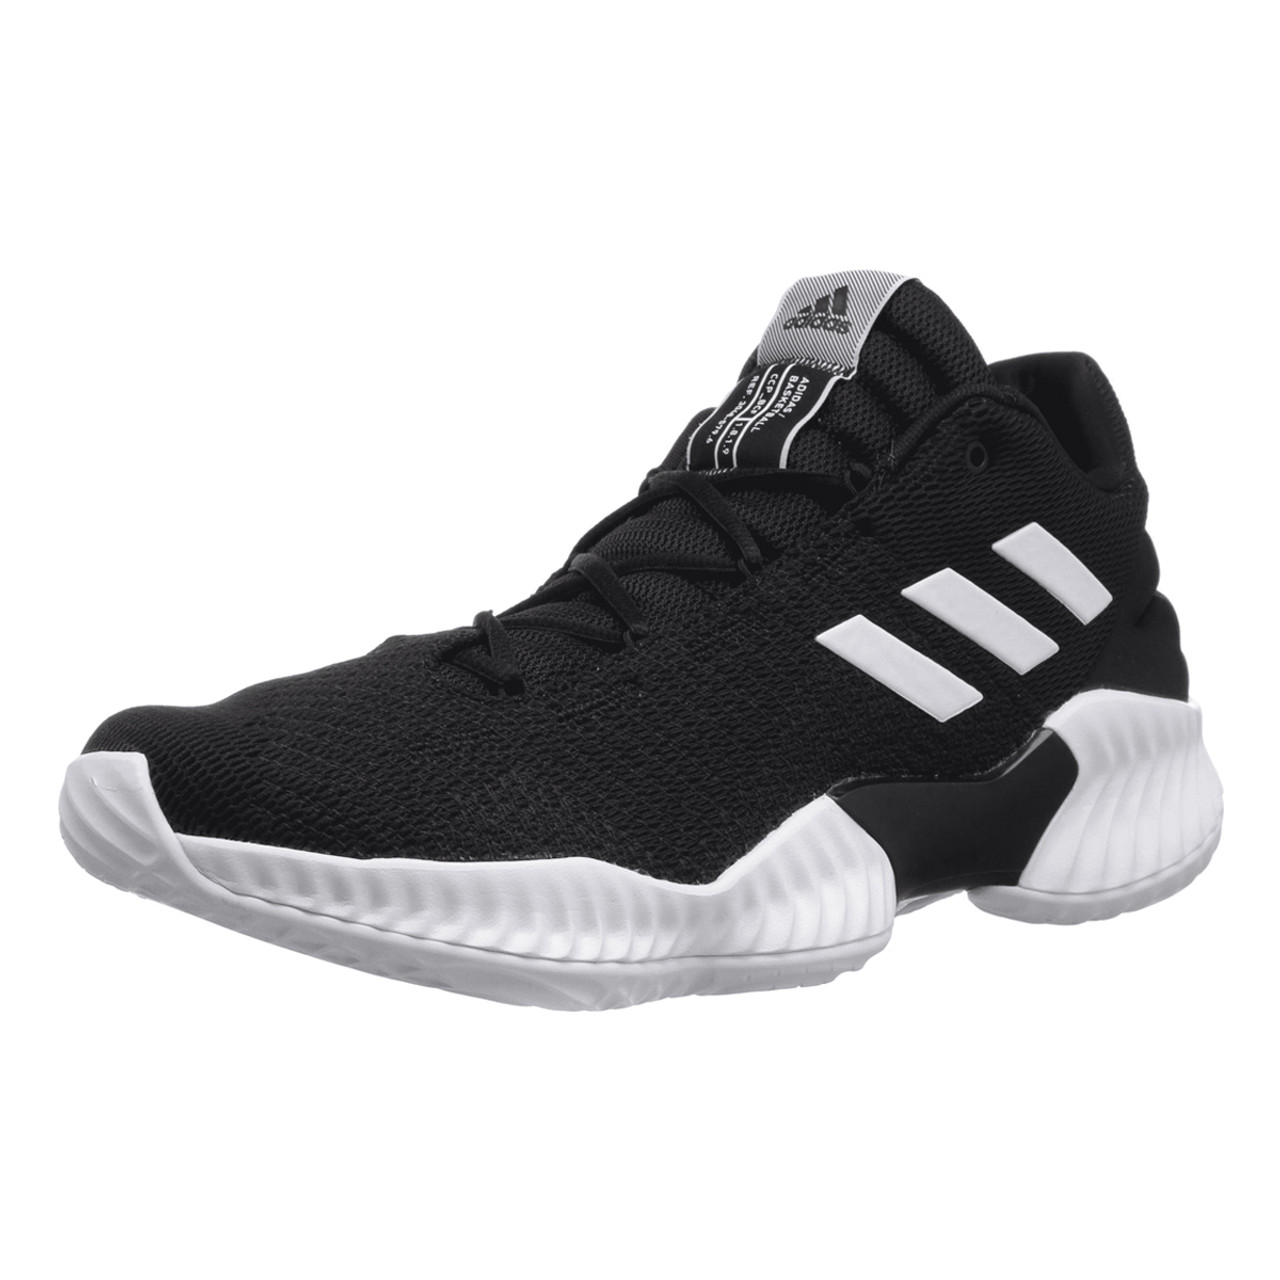 424876824 Adidas Pro Bounce Low Men s Basketball Sneakers AH2673 - Black ...